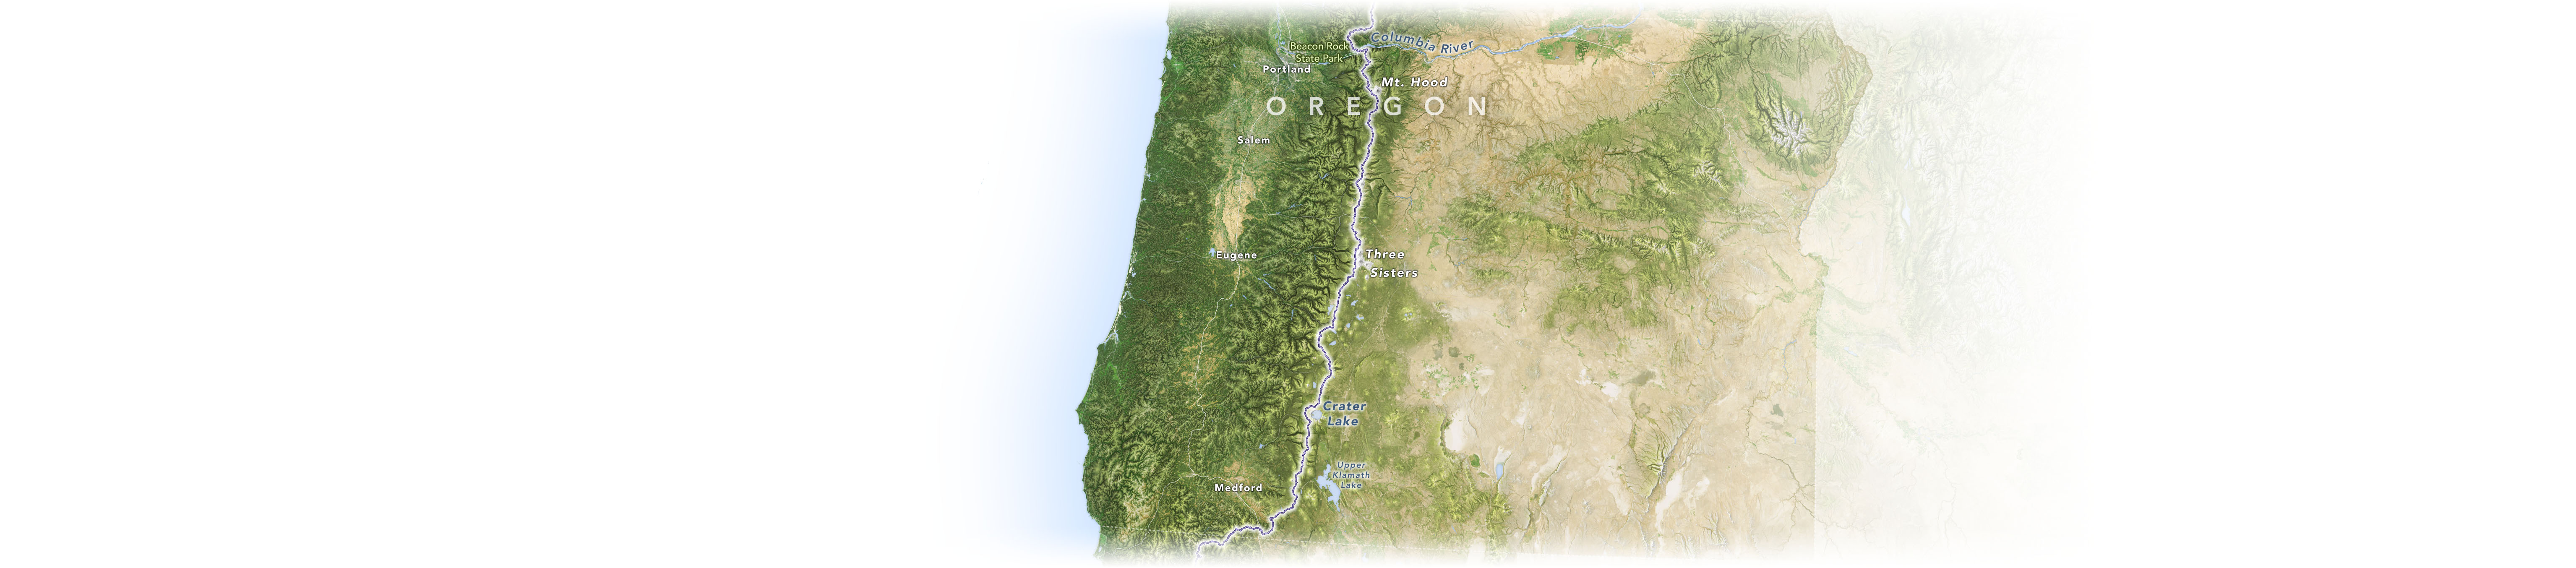 A map of the Pacific Crest Trail and nearby landmarks in the state of Oregon.